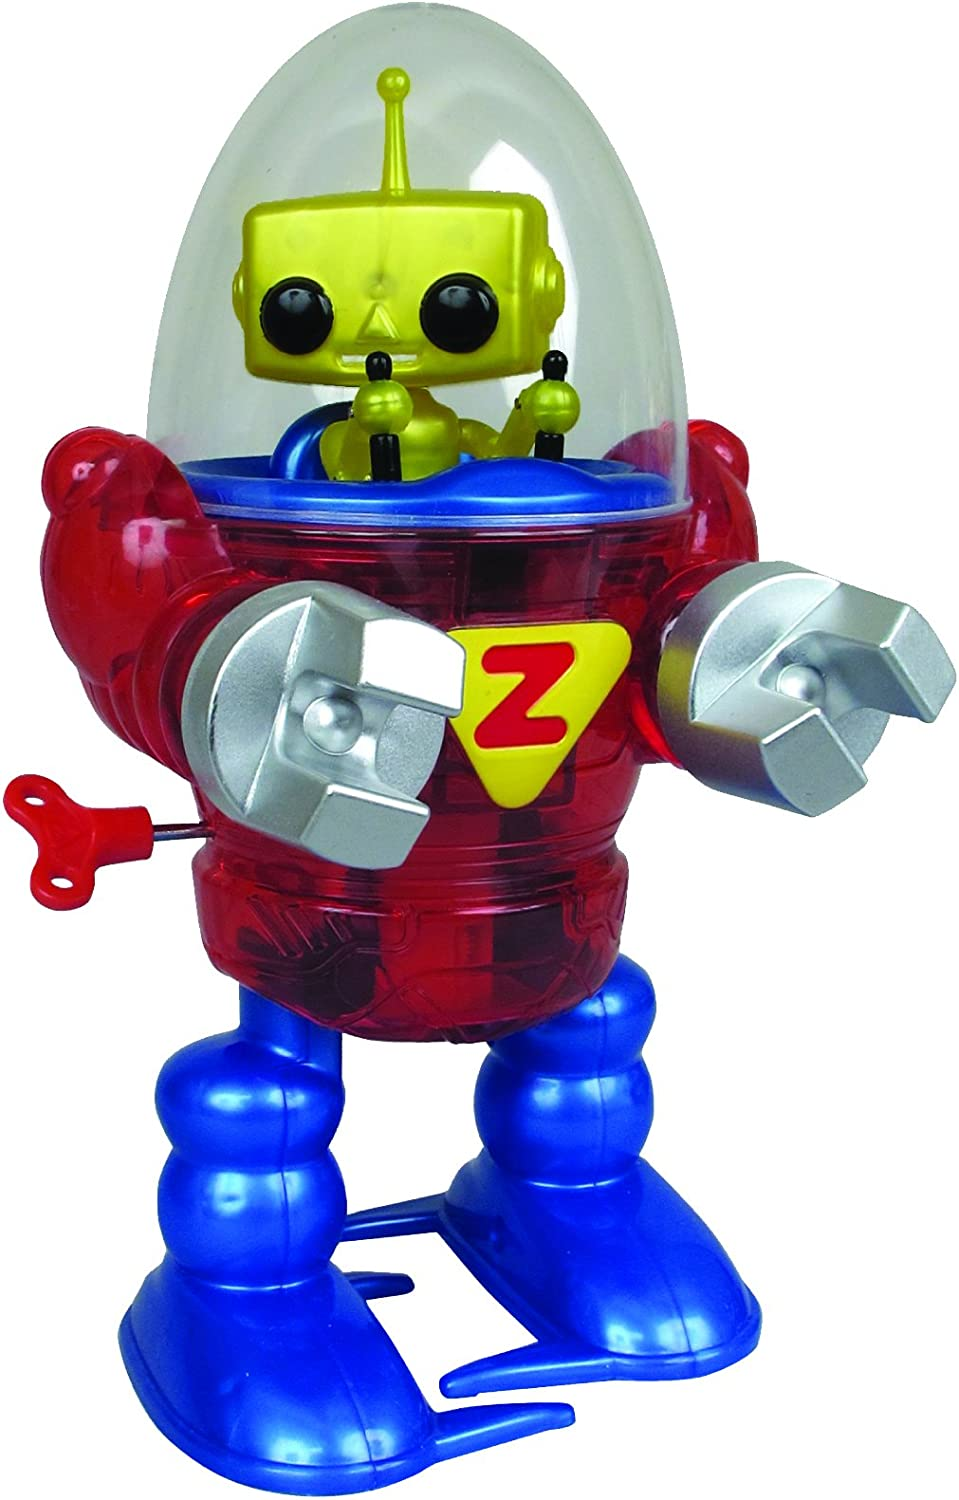 Toys  Z Wind Ups  Classic Robot, Merlin Kids Game New 79250